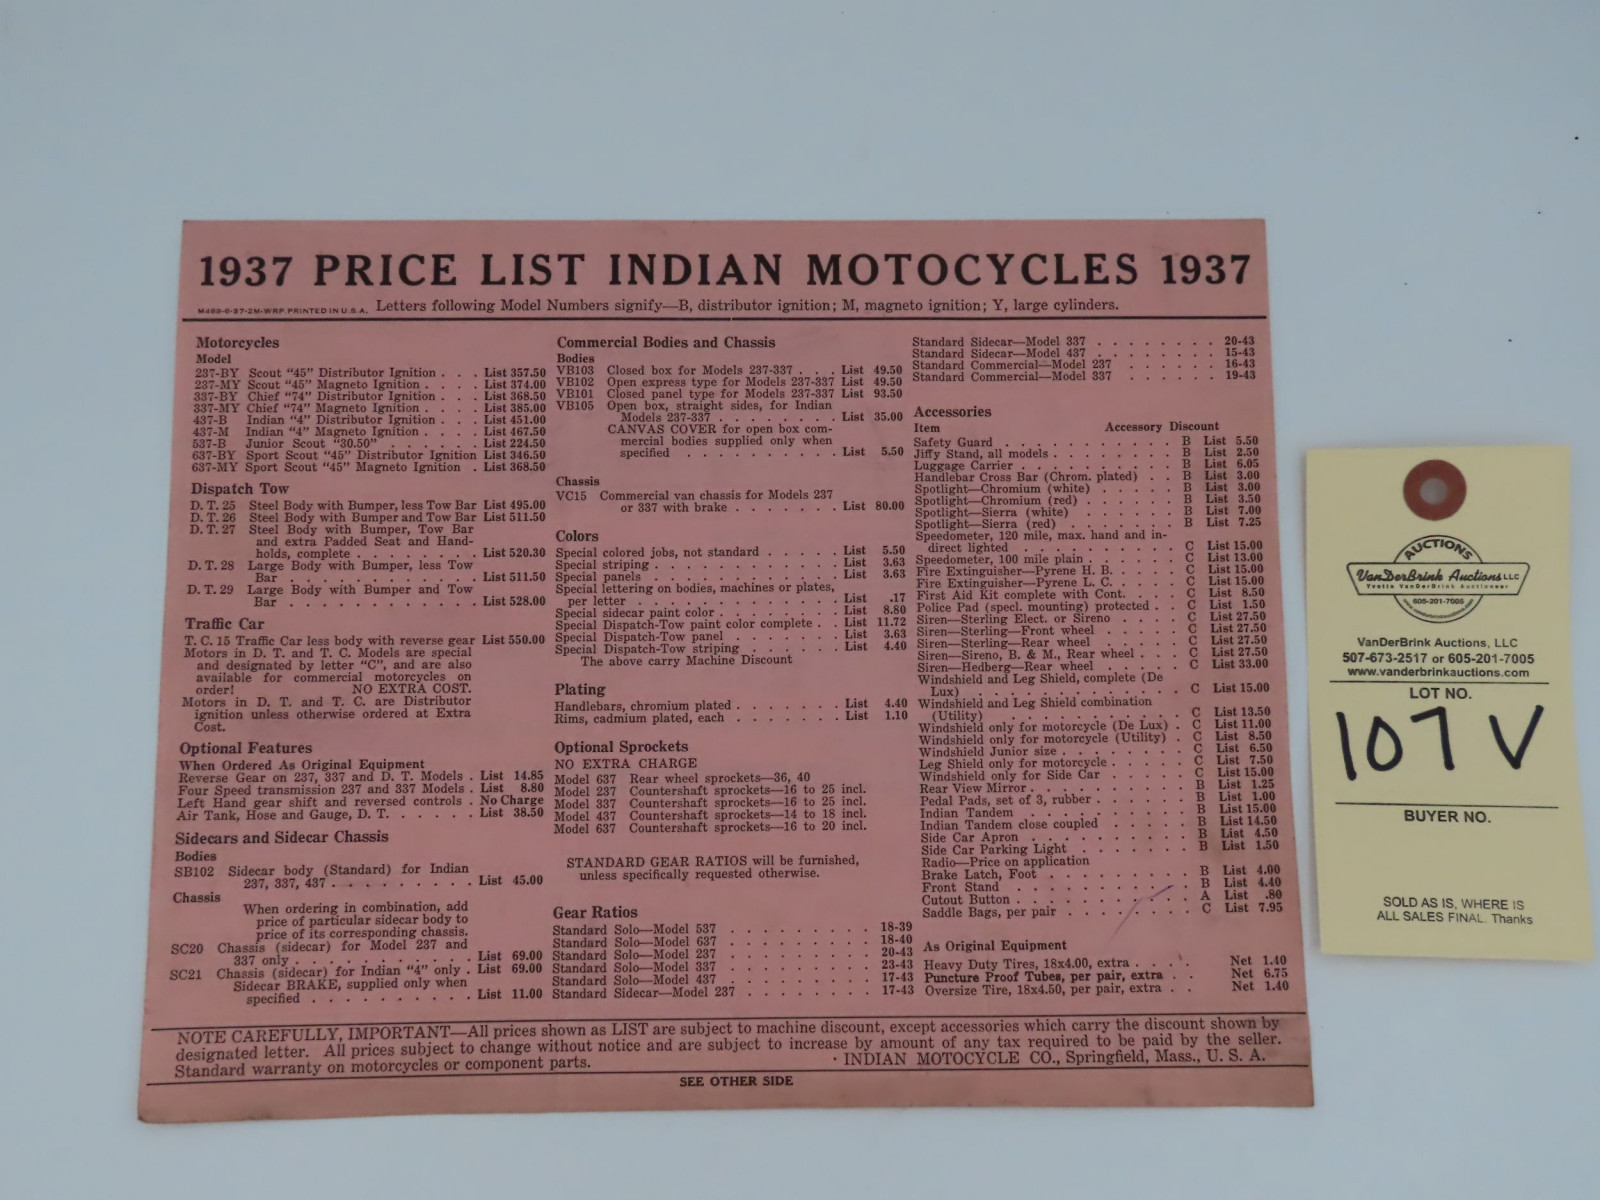 1937 Indian Motorcycles Price List - Image 1